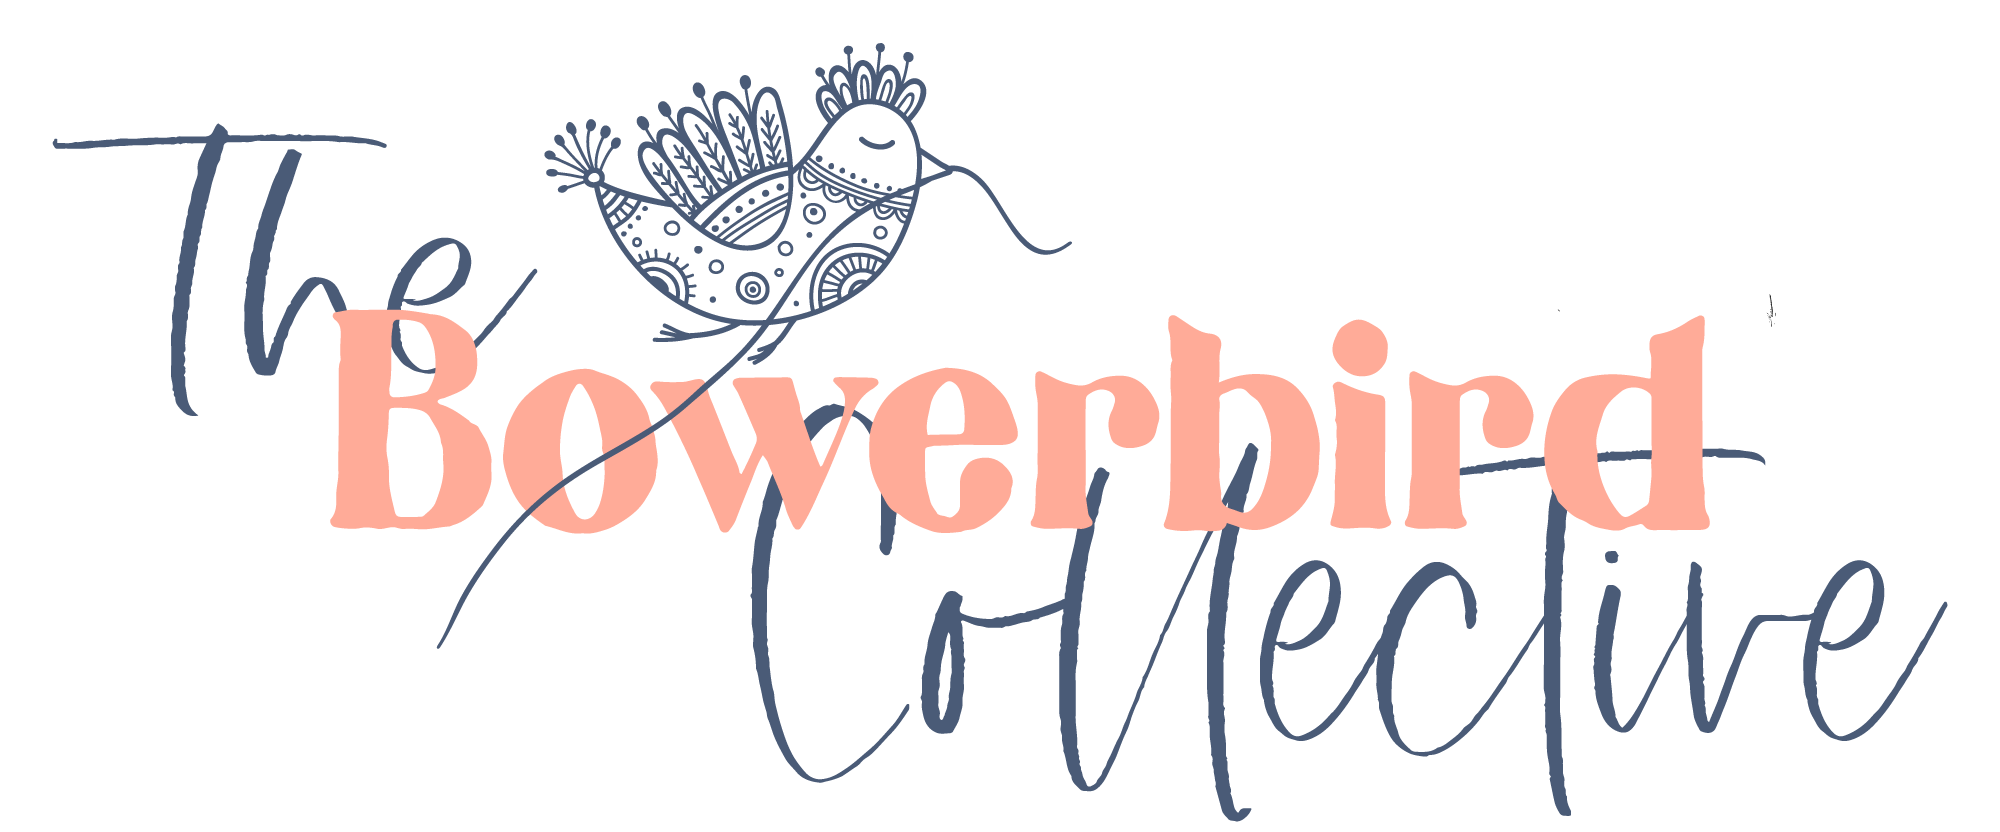 The Bowerbird Collective